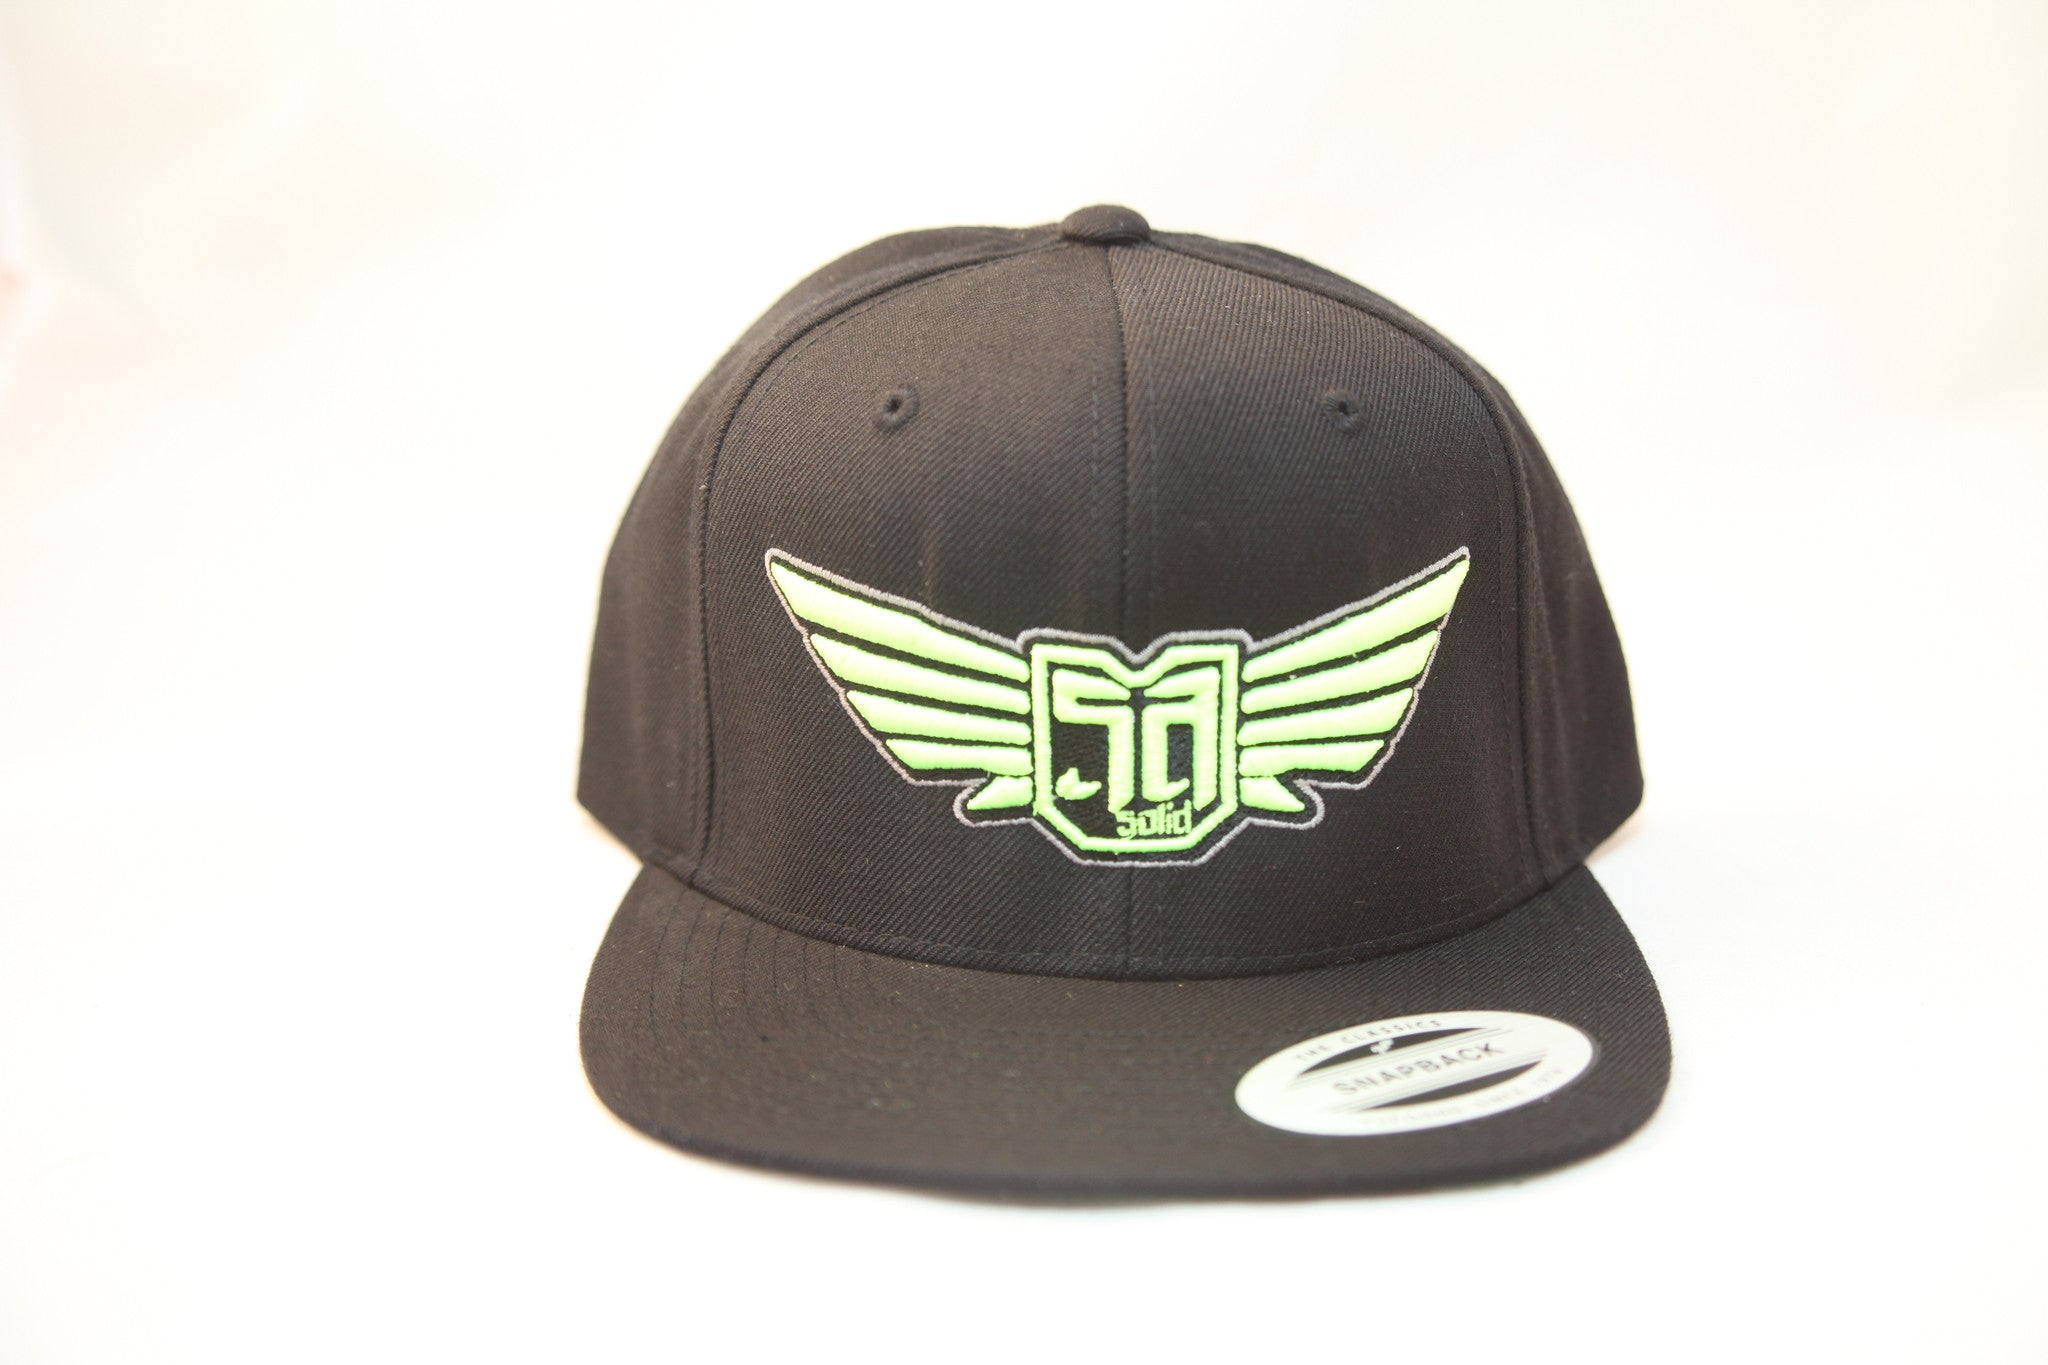 AV8 - FLEXFIT SNAP BACK HAT - BLACK - MNT / BLK / SLV LOGO